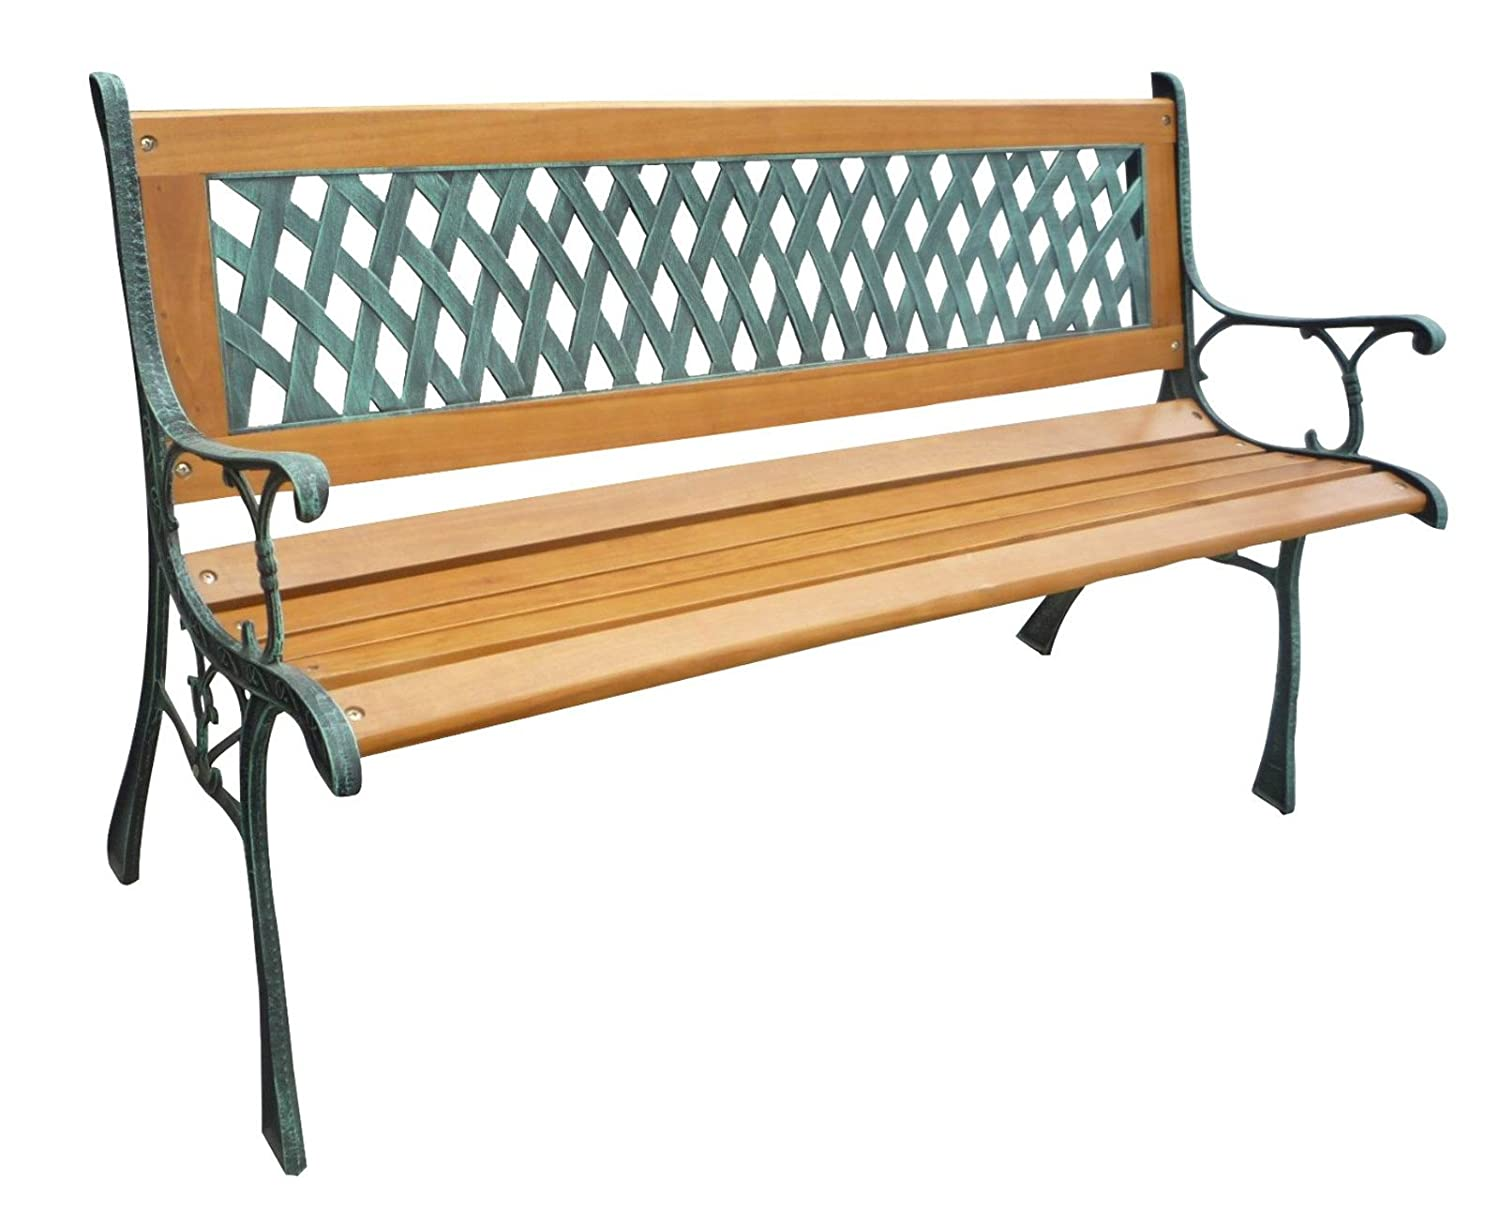 WestWood 3 Seater Wooden Slat Garden Bench Seat Lattice Style Cast Iron Legs KMS